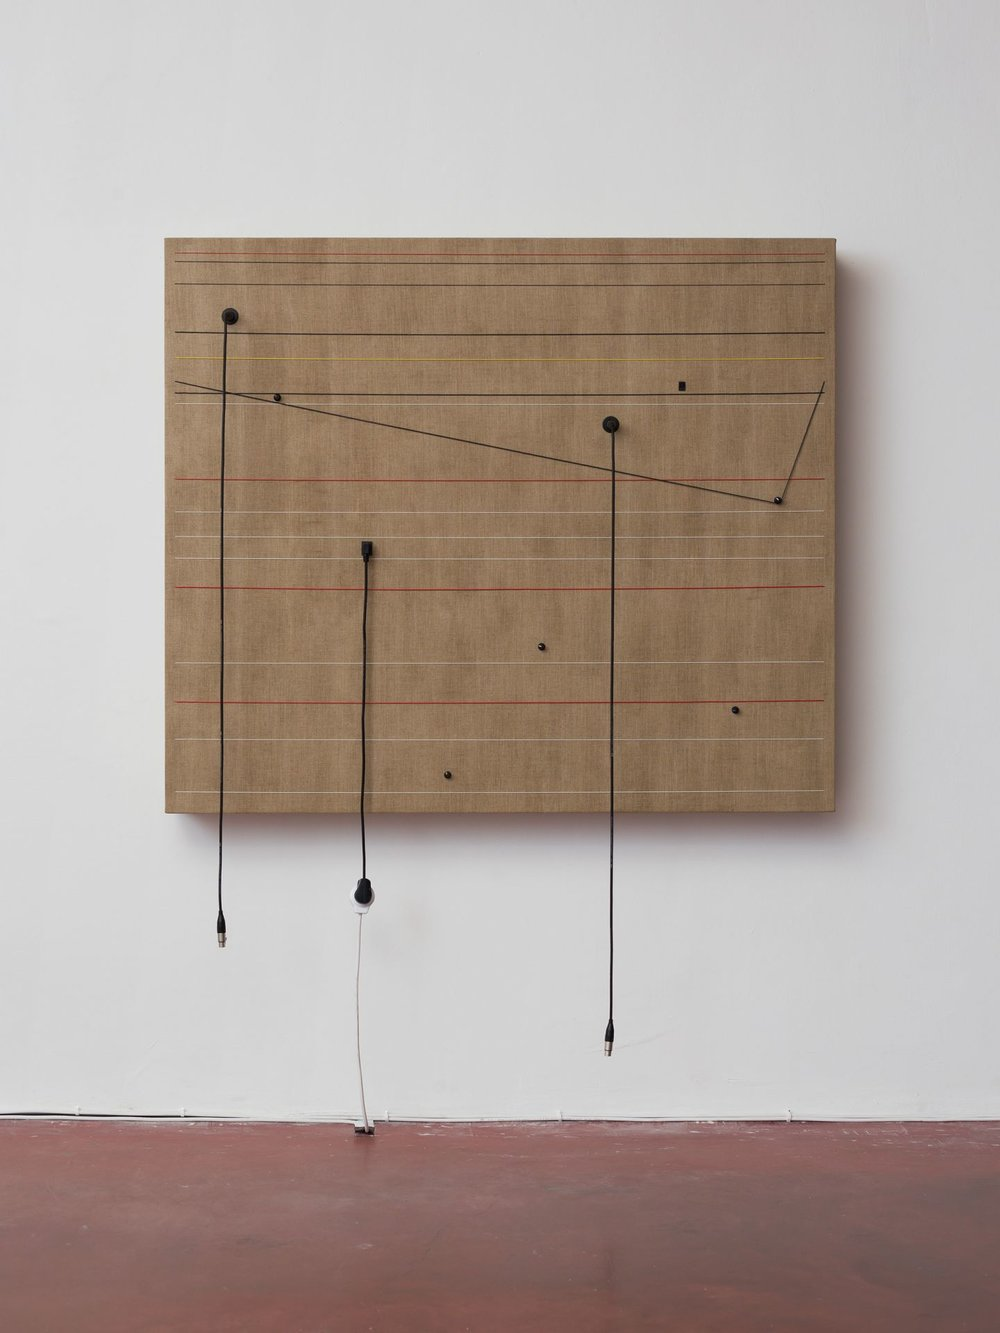 Transitions, 2016, Wood, canvas, electronics, cables, knobs, speakers, 51 3/5 × 60 2/5 × 6 1/2""